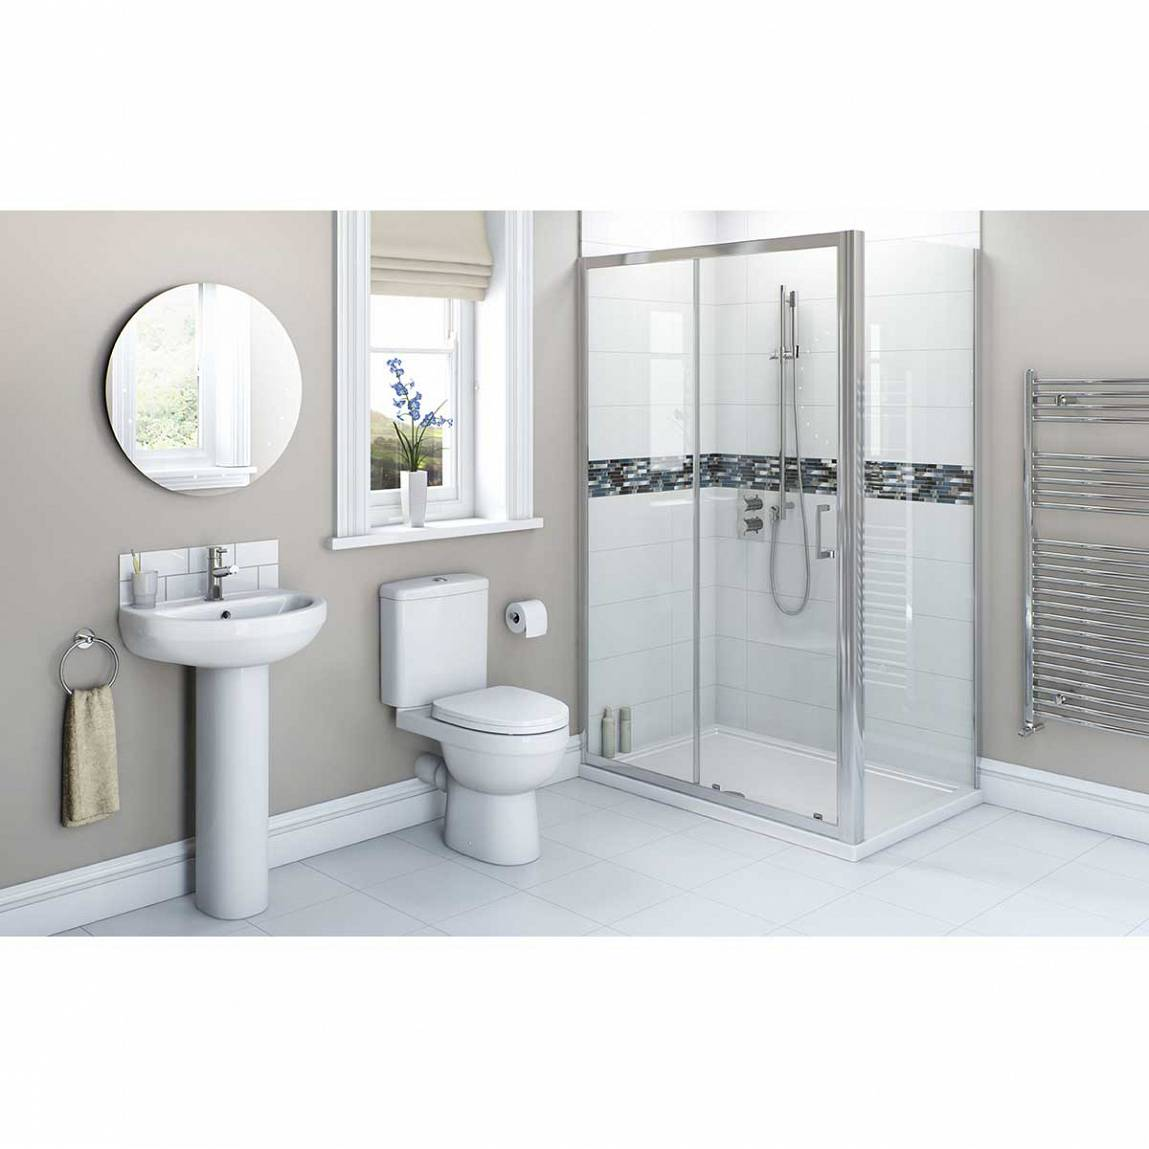 Image of Energy Bathroom set with 1000x760 Sliding Enclosure